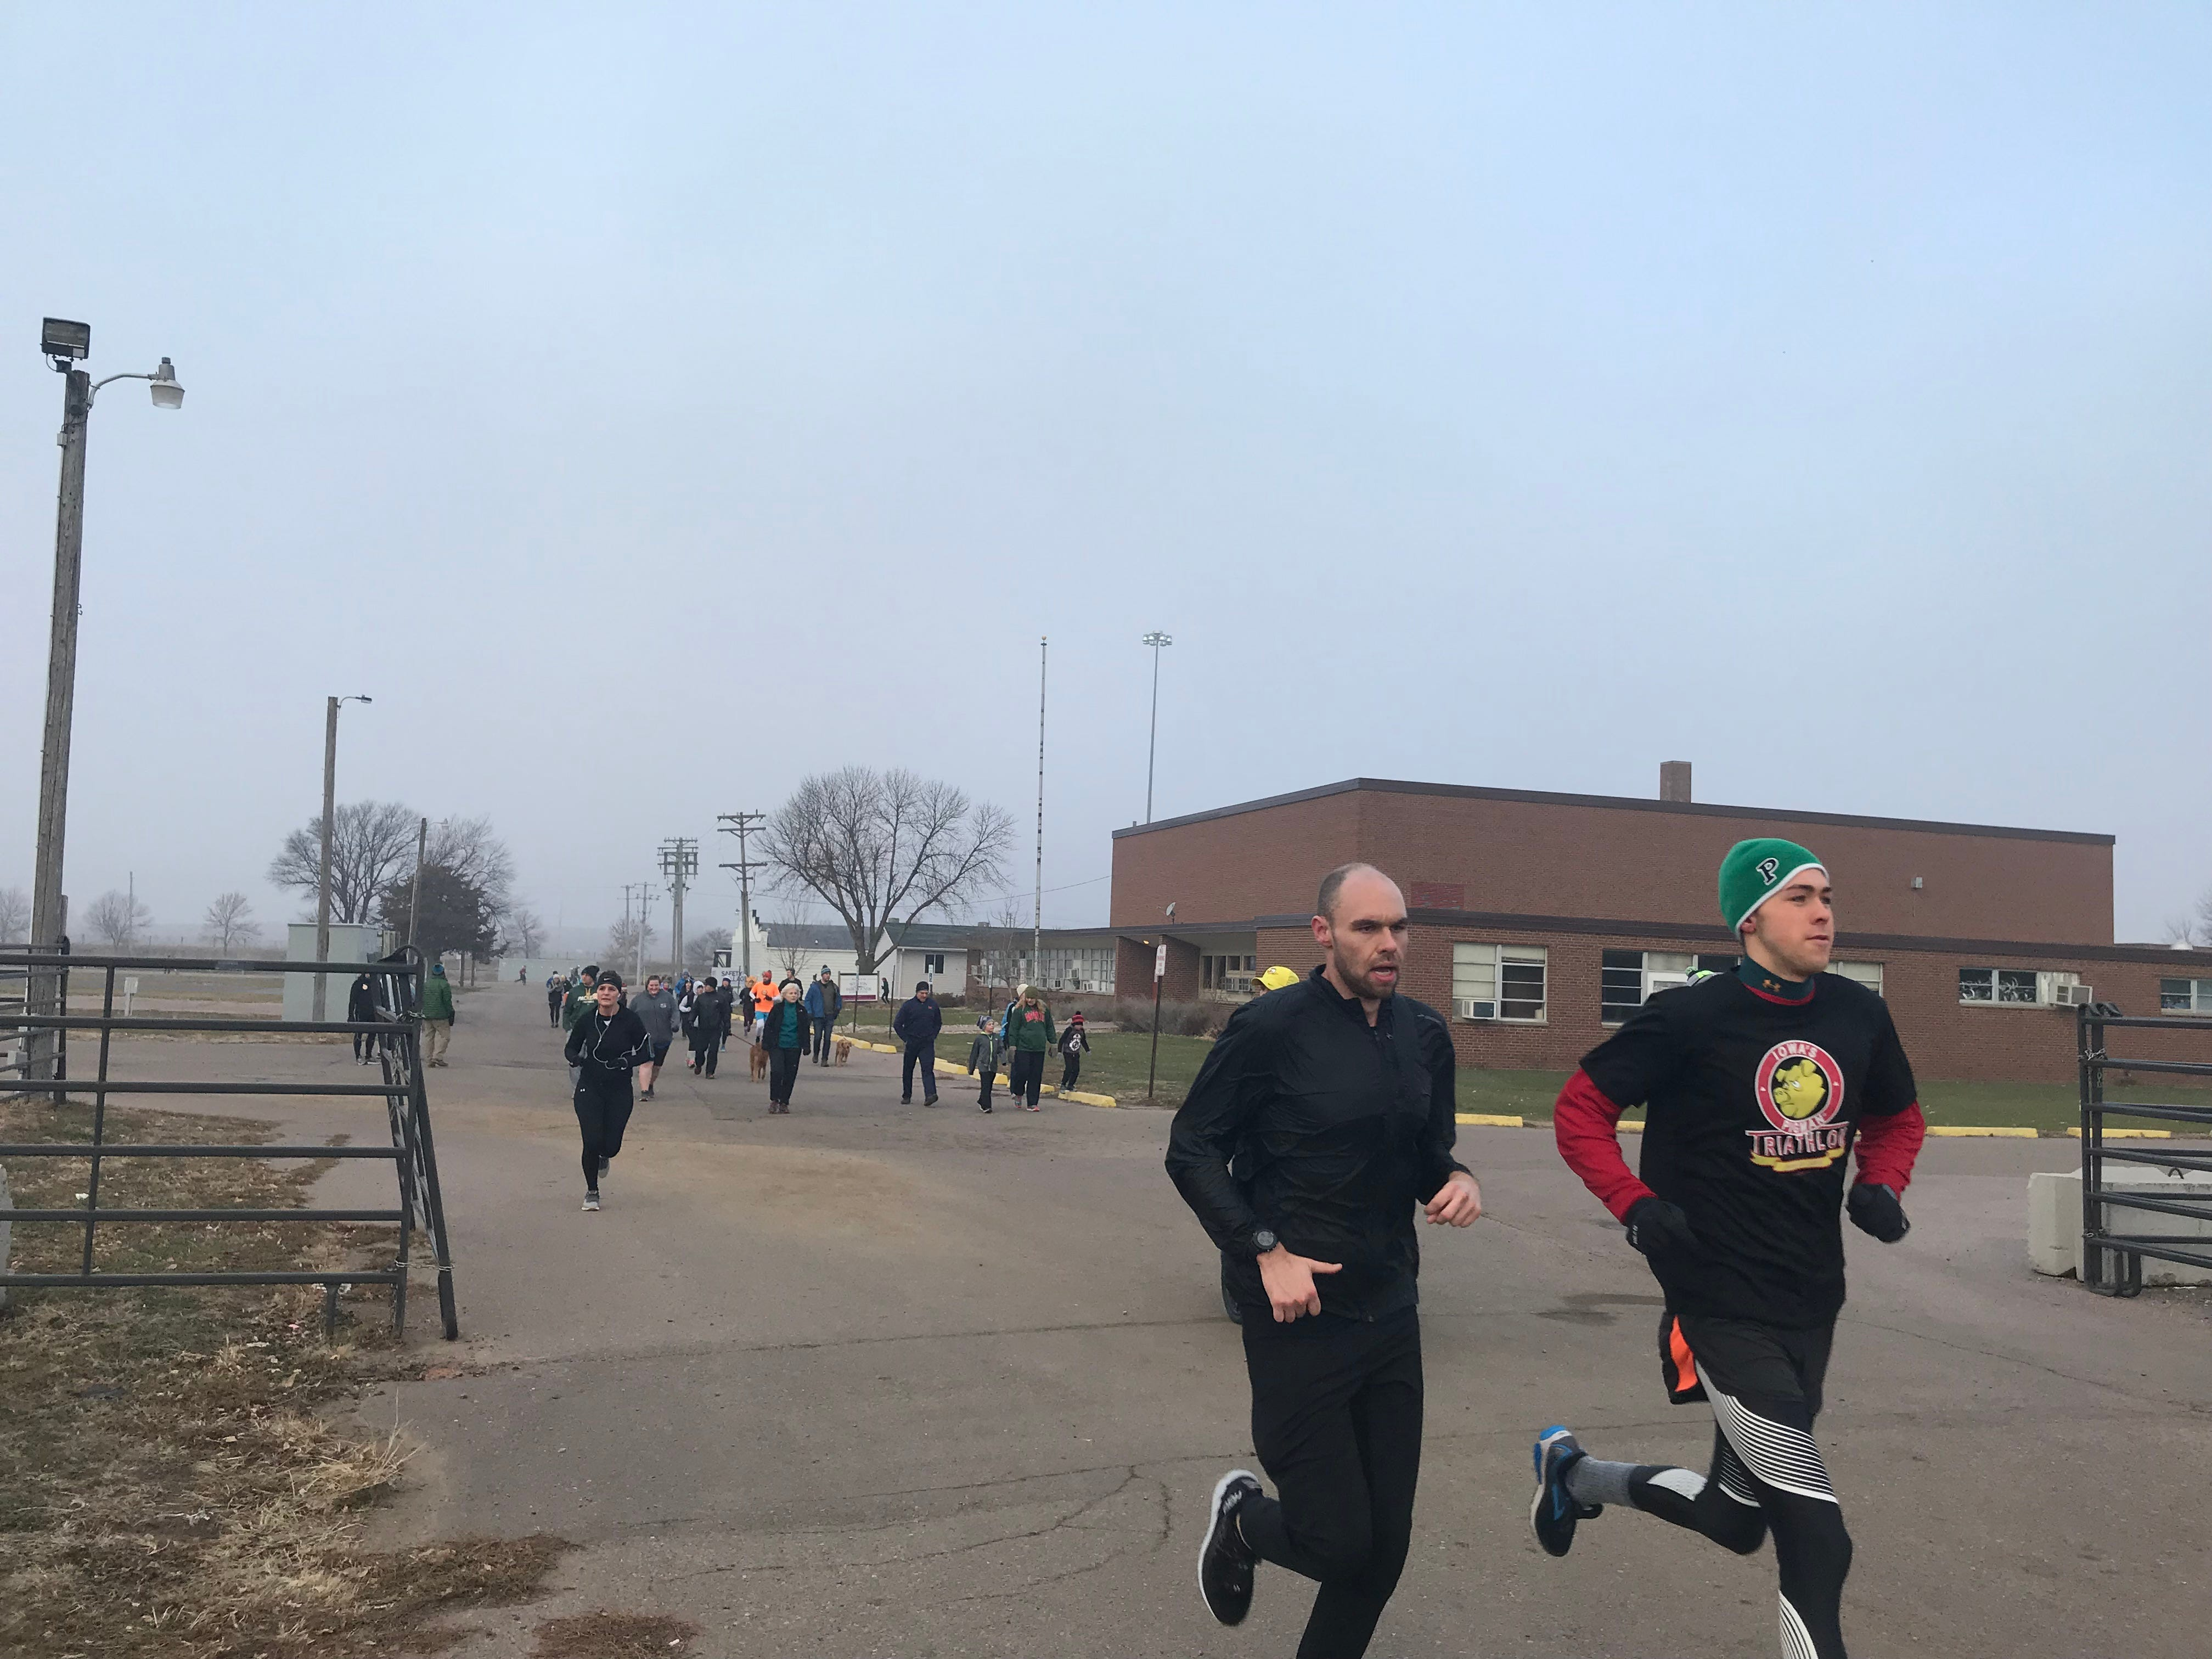 Runners participate in the 2018 Run for Food. The event benefits the Banquet, which serves hot meals to Sioux Falls' hungry.